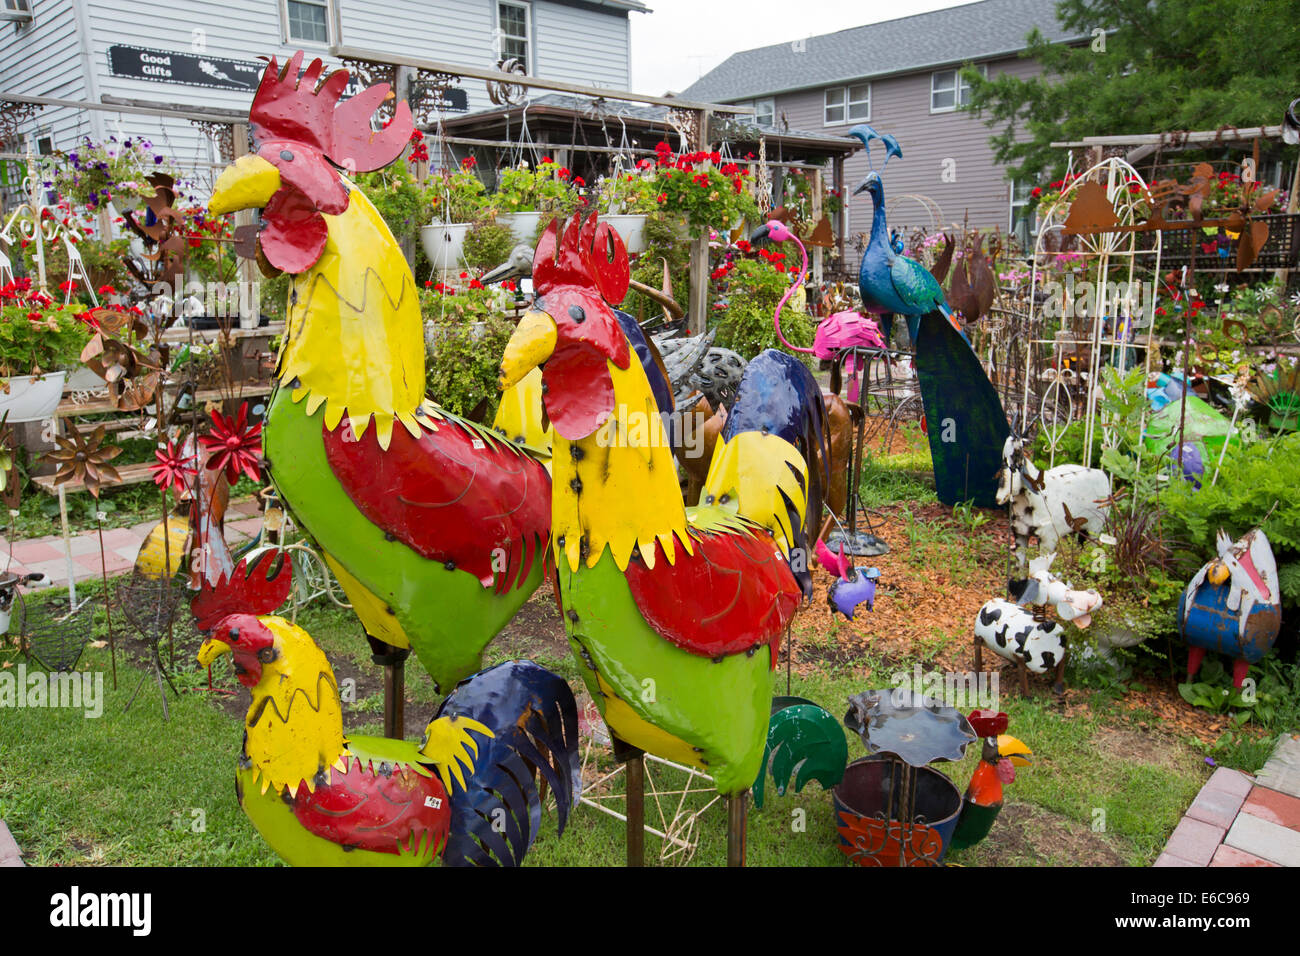 Amana Iowa Garden Decorations On Sale At A Shop In The Formerly Stock Photo Alamy